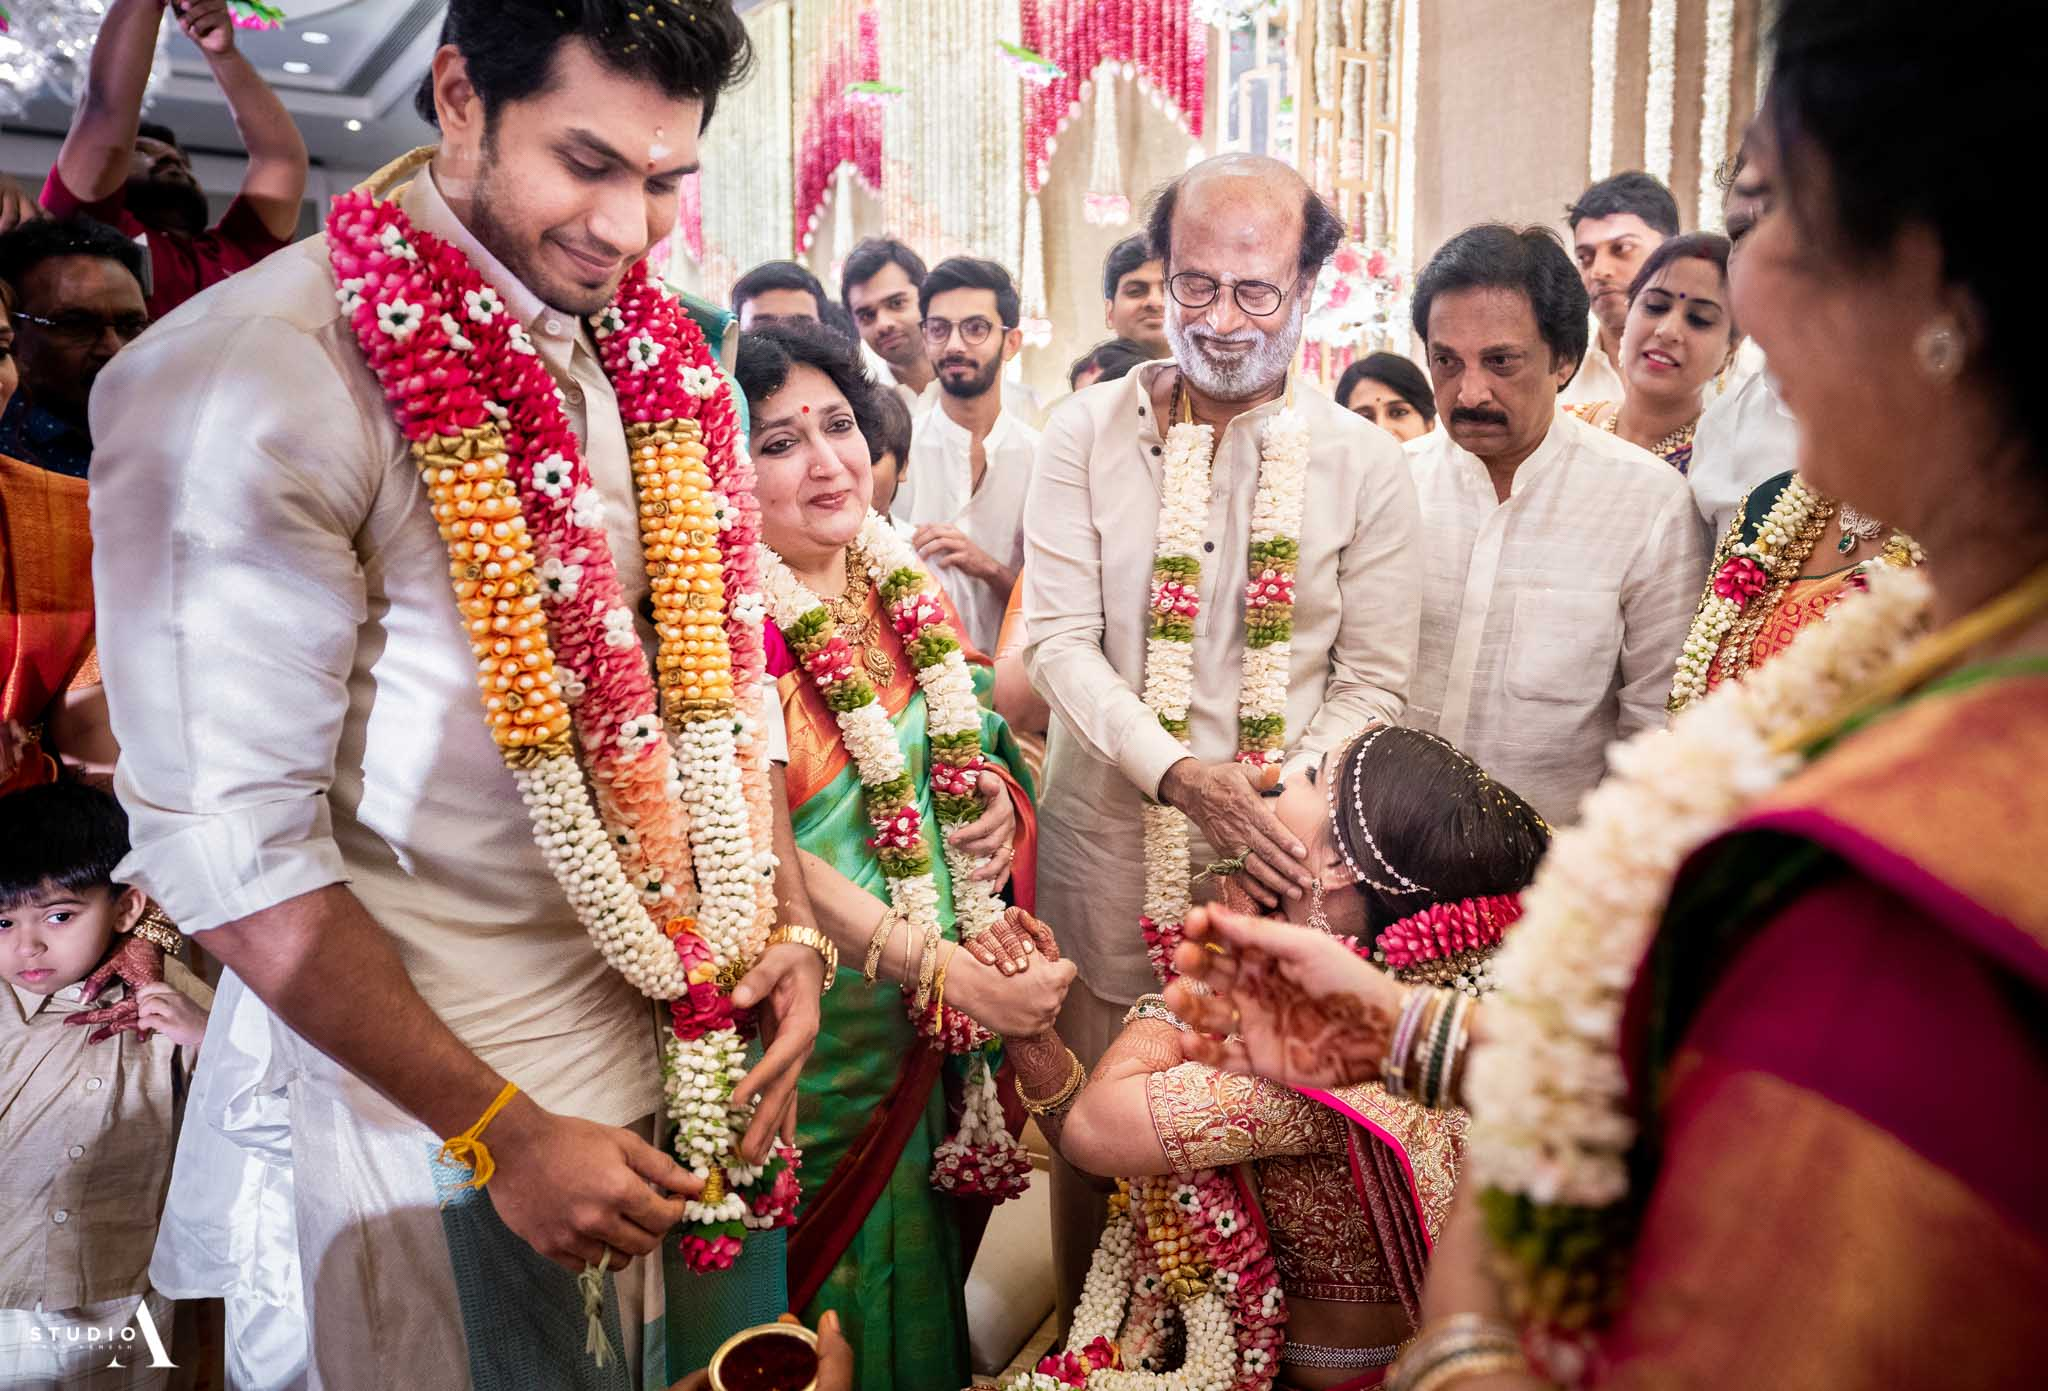 vishagan-soundarya-Rajinikanth-superstar-daughter-wedding-7